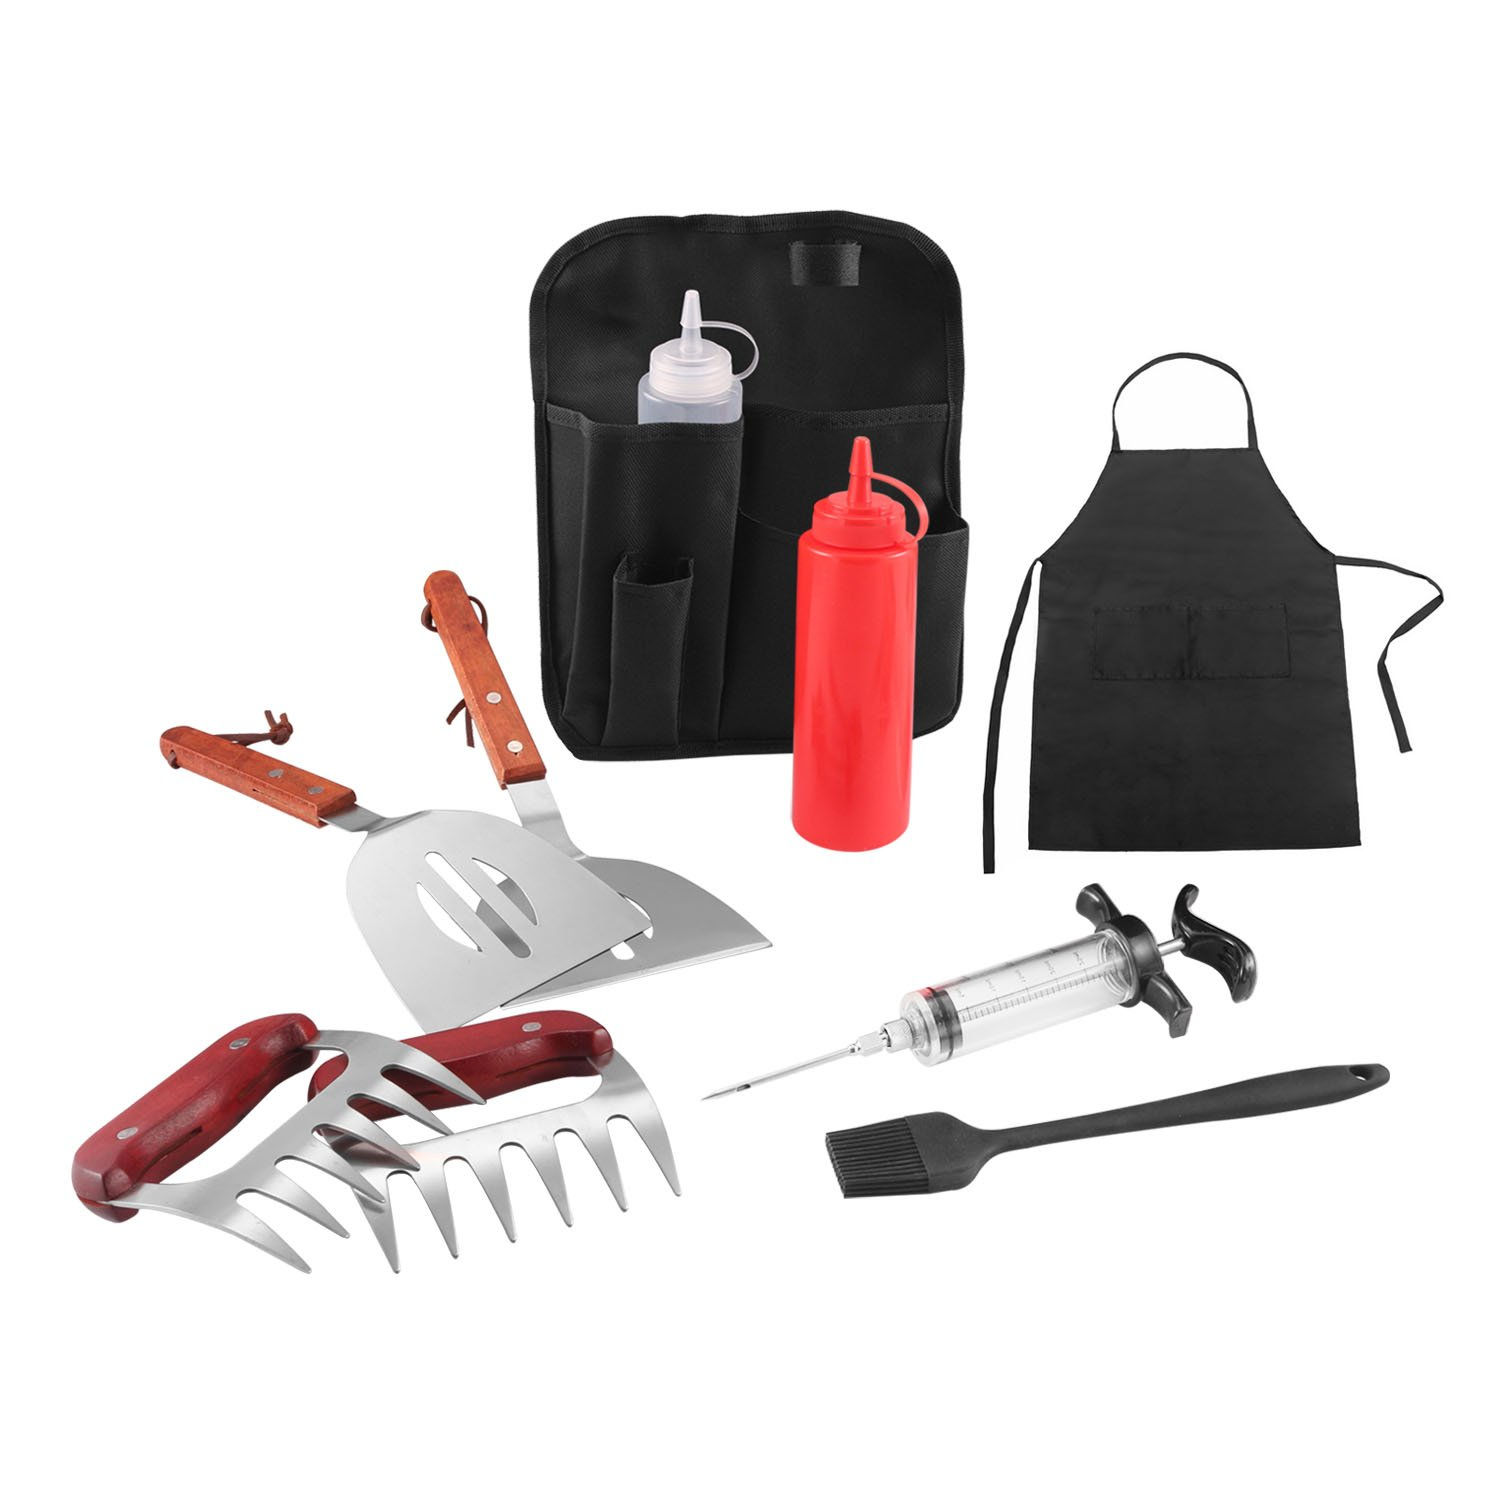 Doatry Professional Grill Griddle 10 Pcs BBQ Tool Set, Stainless Steel Spatulas and Meat Claws, Include Meat Injector, Waterproof Apron and Belt Bag